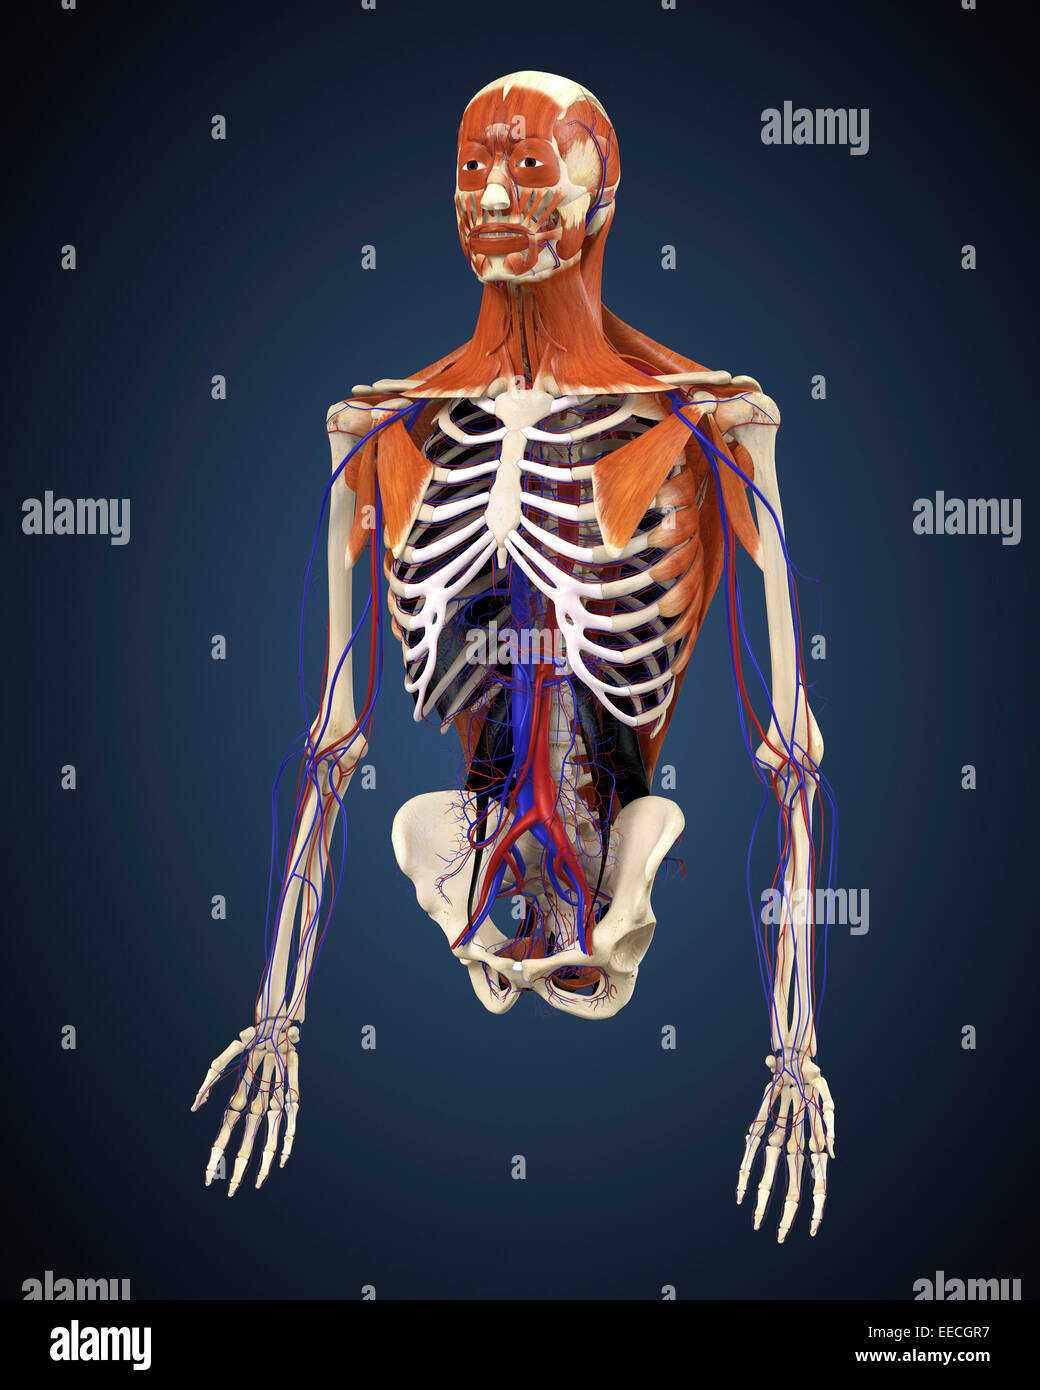 Human Upper Body Showing Bones Muscles And Circulatory System Stock